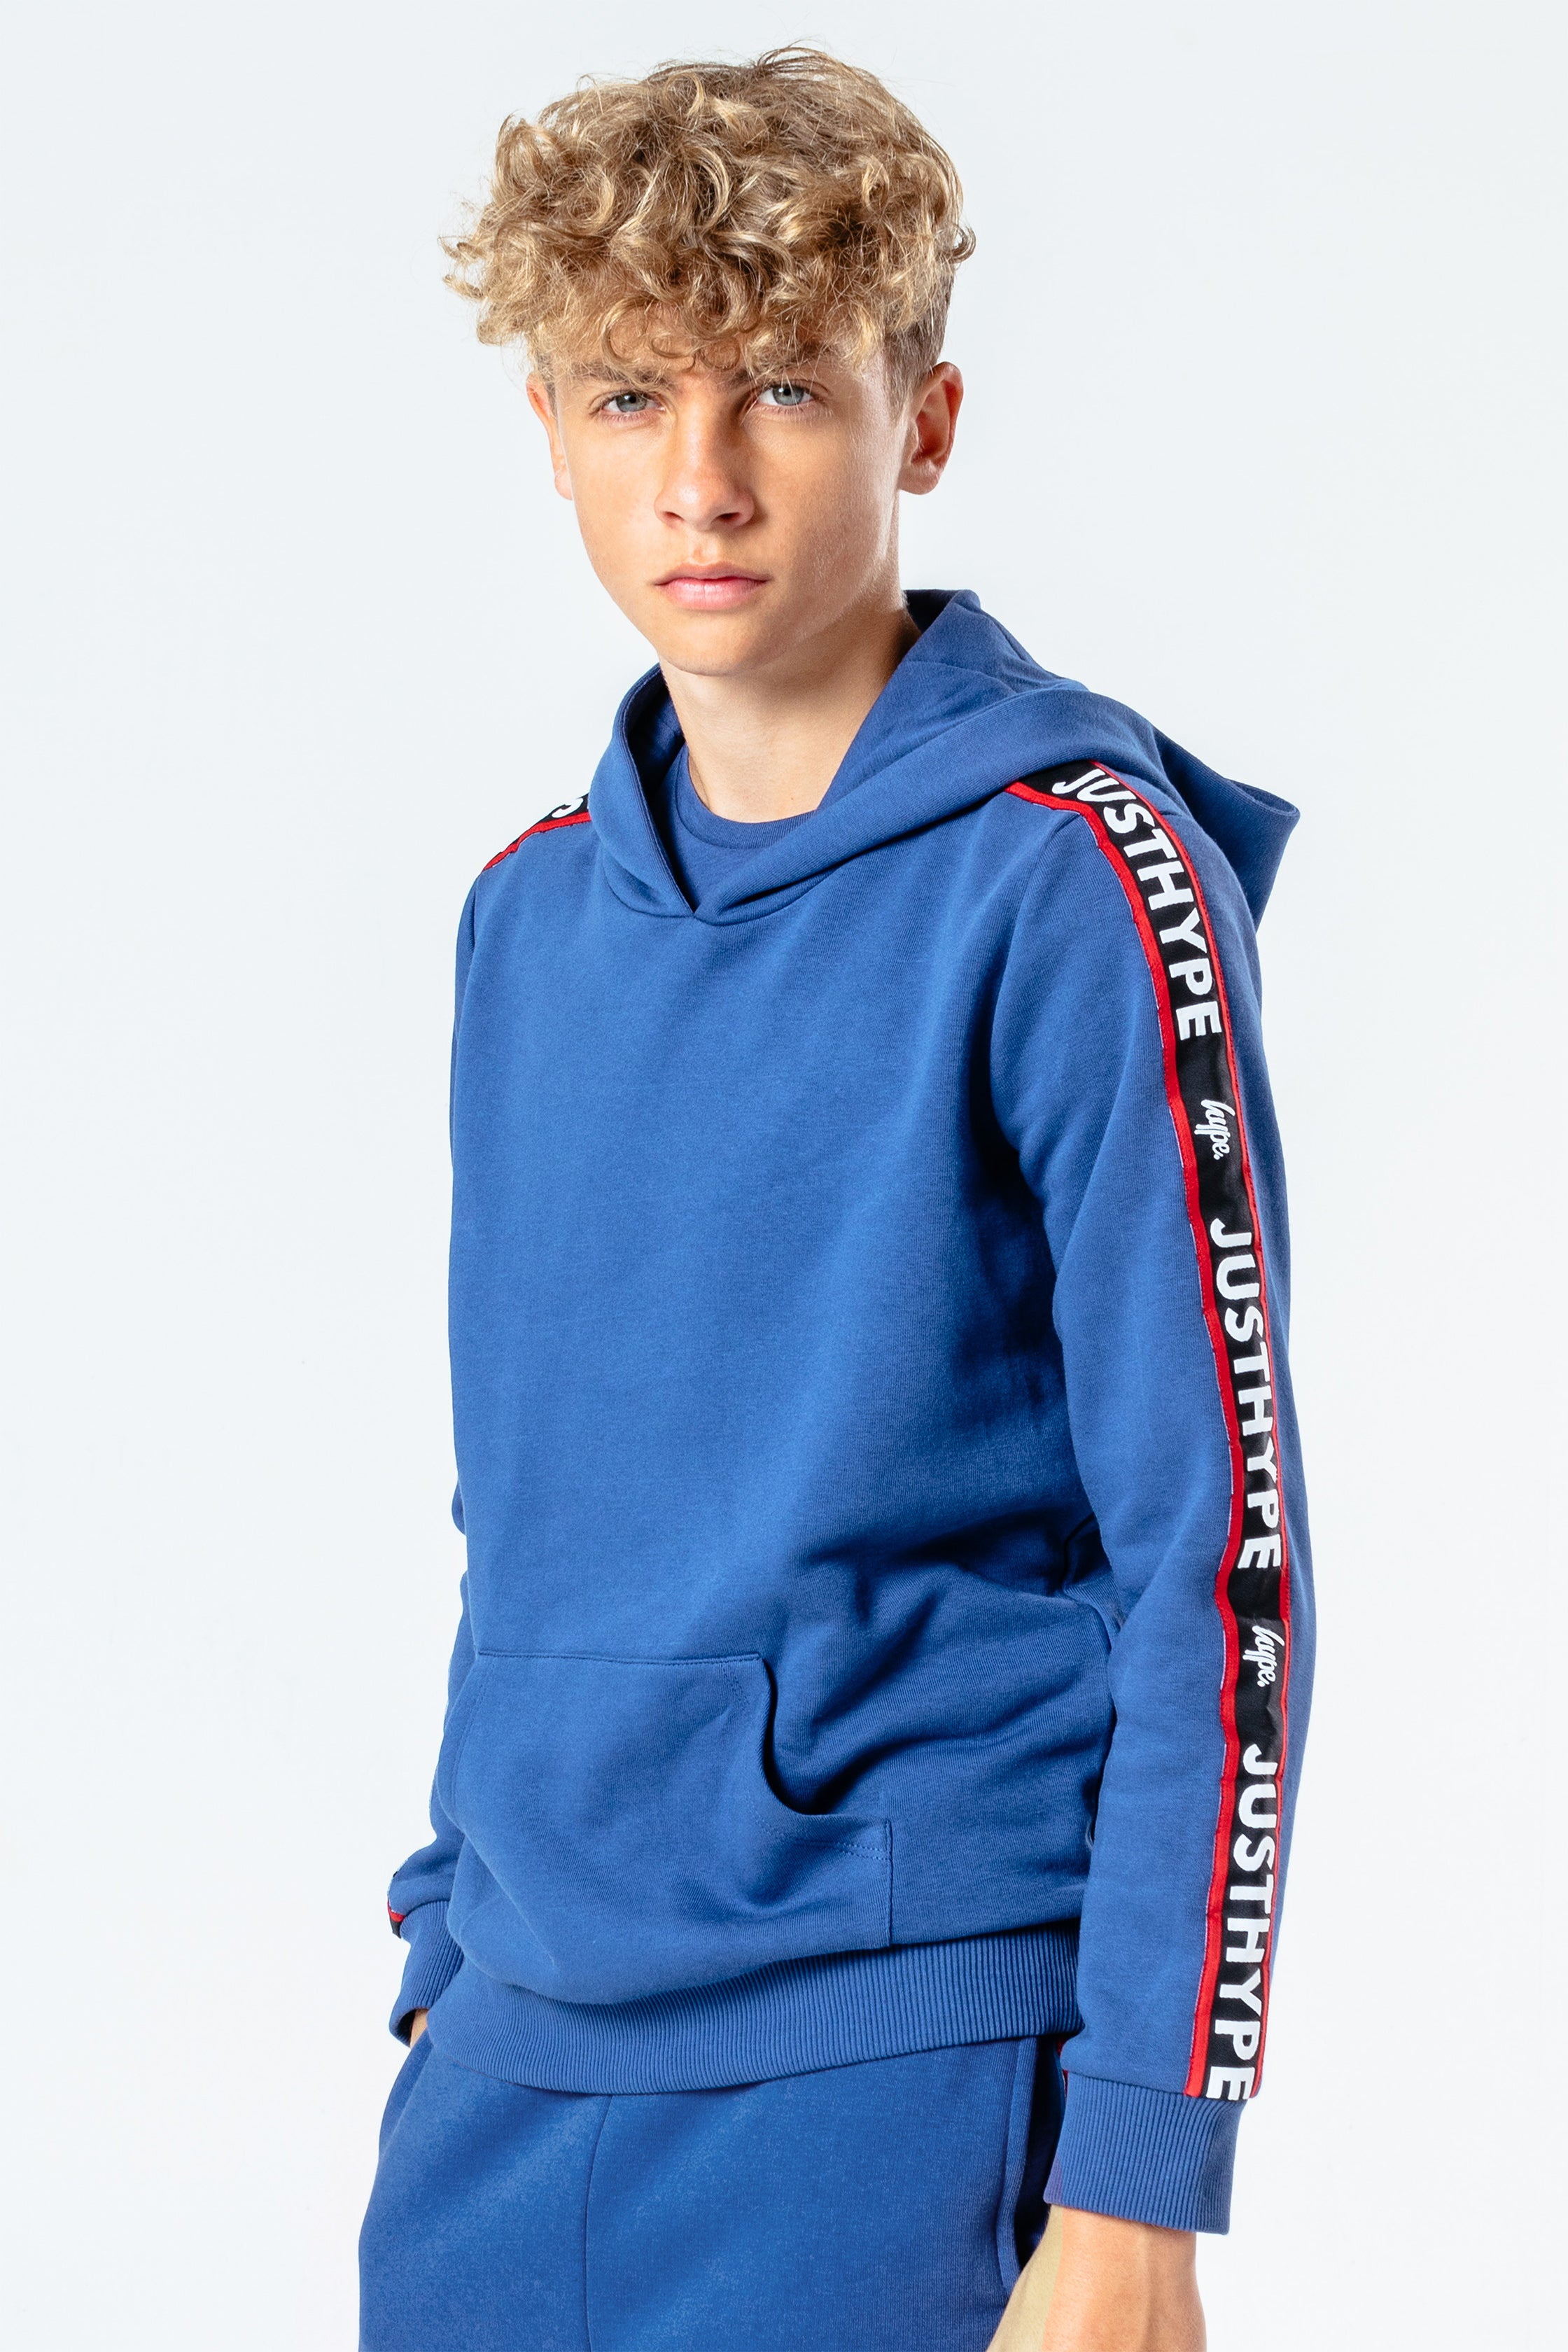 Hype Blue Jh Tape Kids Pullover Hoodie | Size 5/6Y